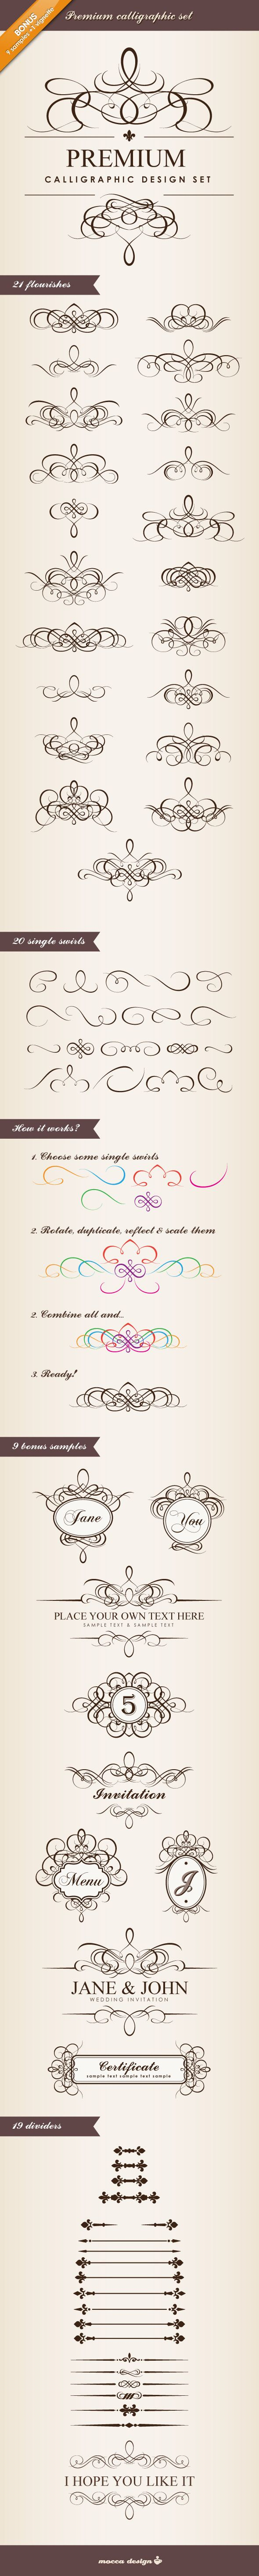 Premium Calligraphic Design Set by Mocca Design. Includes instructions on how to combine them.